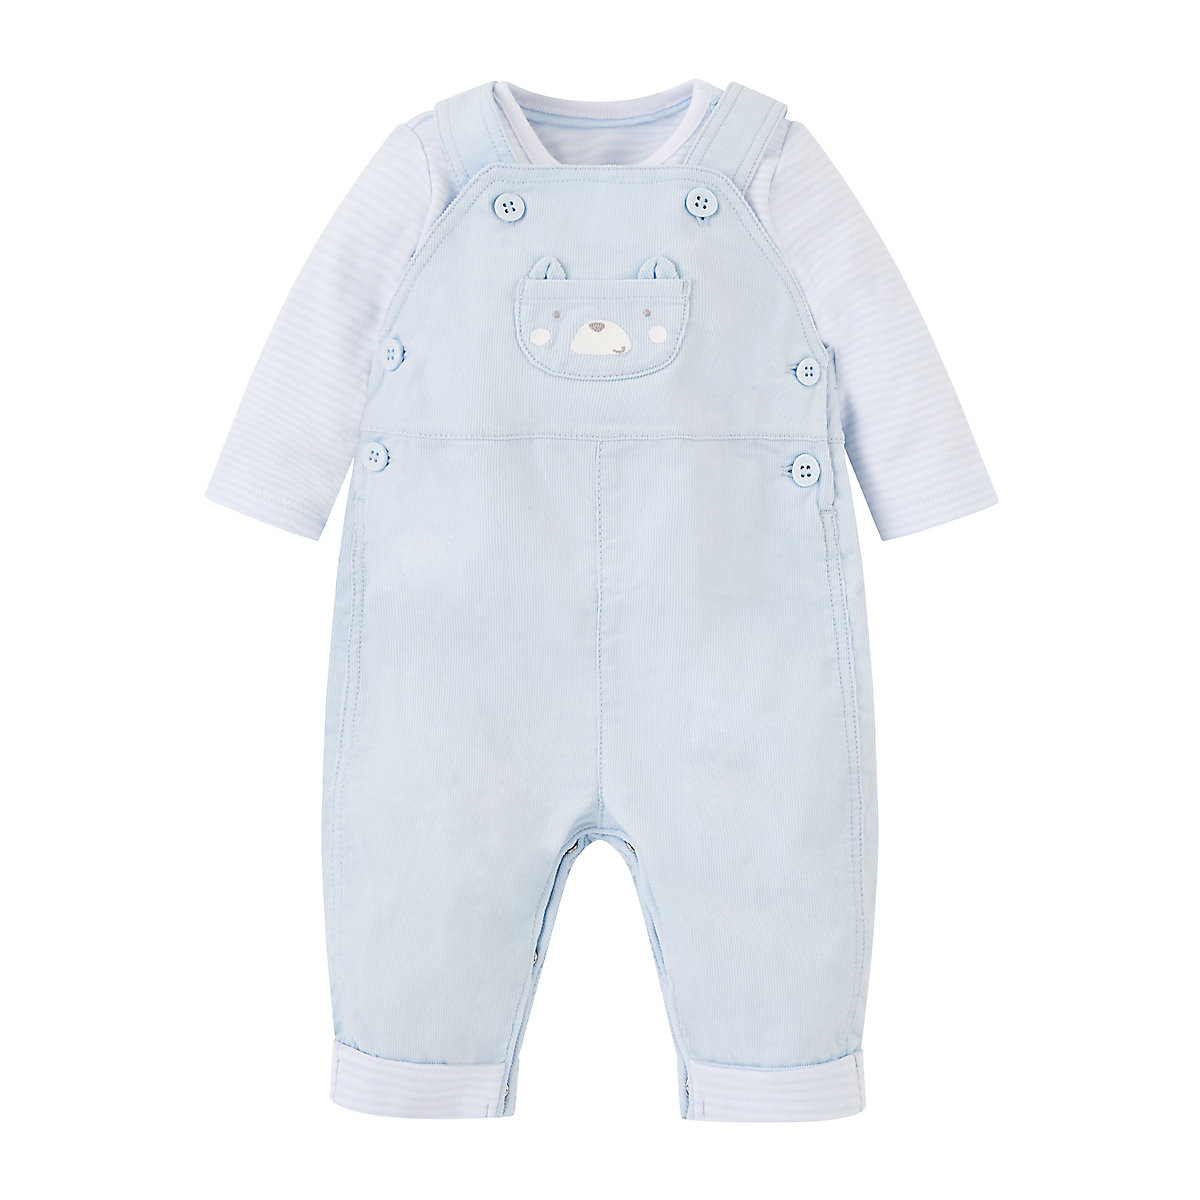 c176dc612 Mothercare Cord Dungarees and Bodysuit set - Reviews